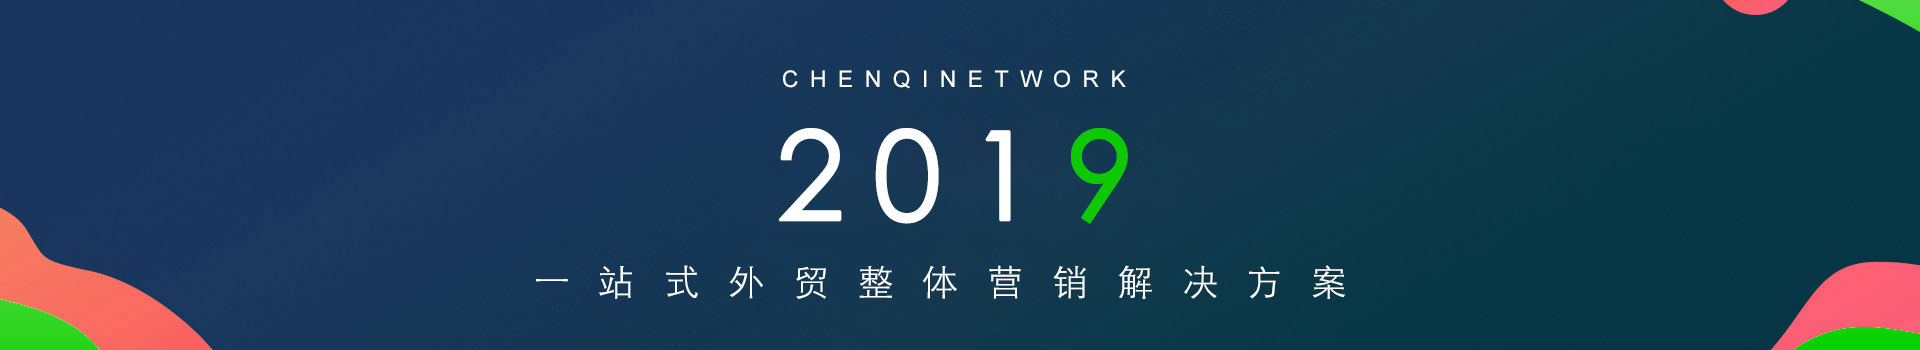 Shandong Chenqi Network Technology Co., Ltd.